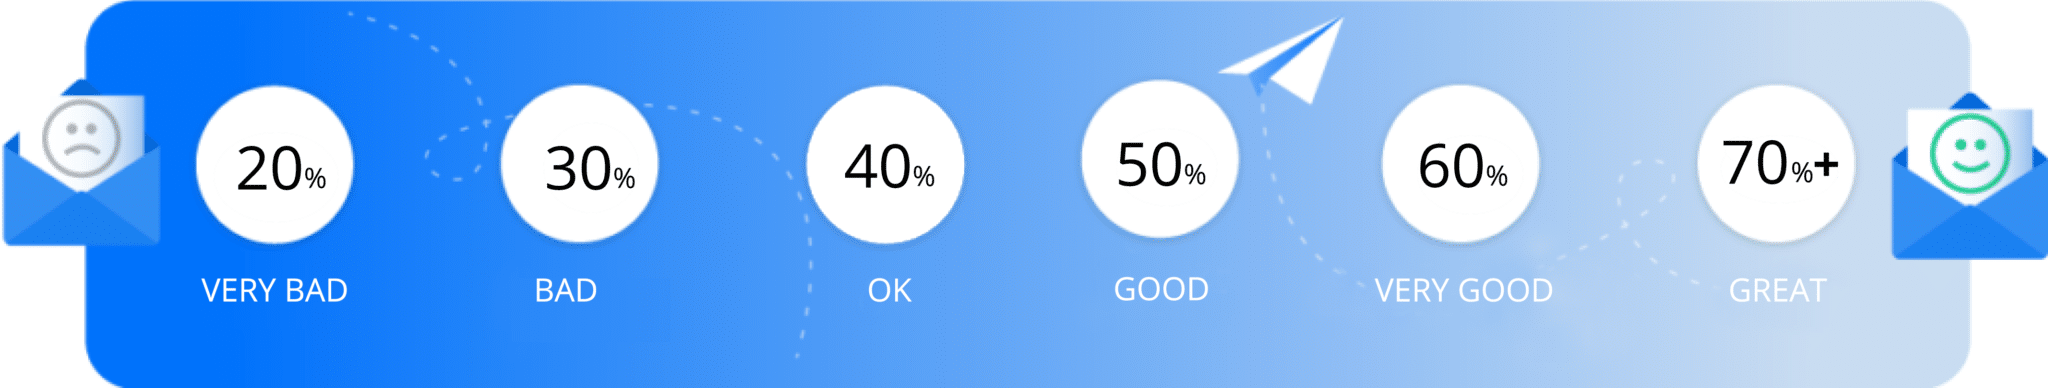 Cold email campaign—measuring effectiveness using the open rate metric